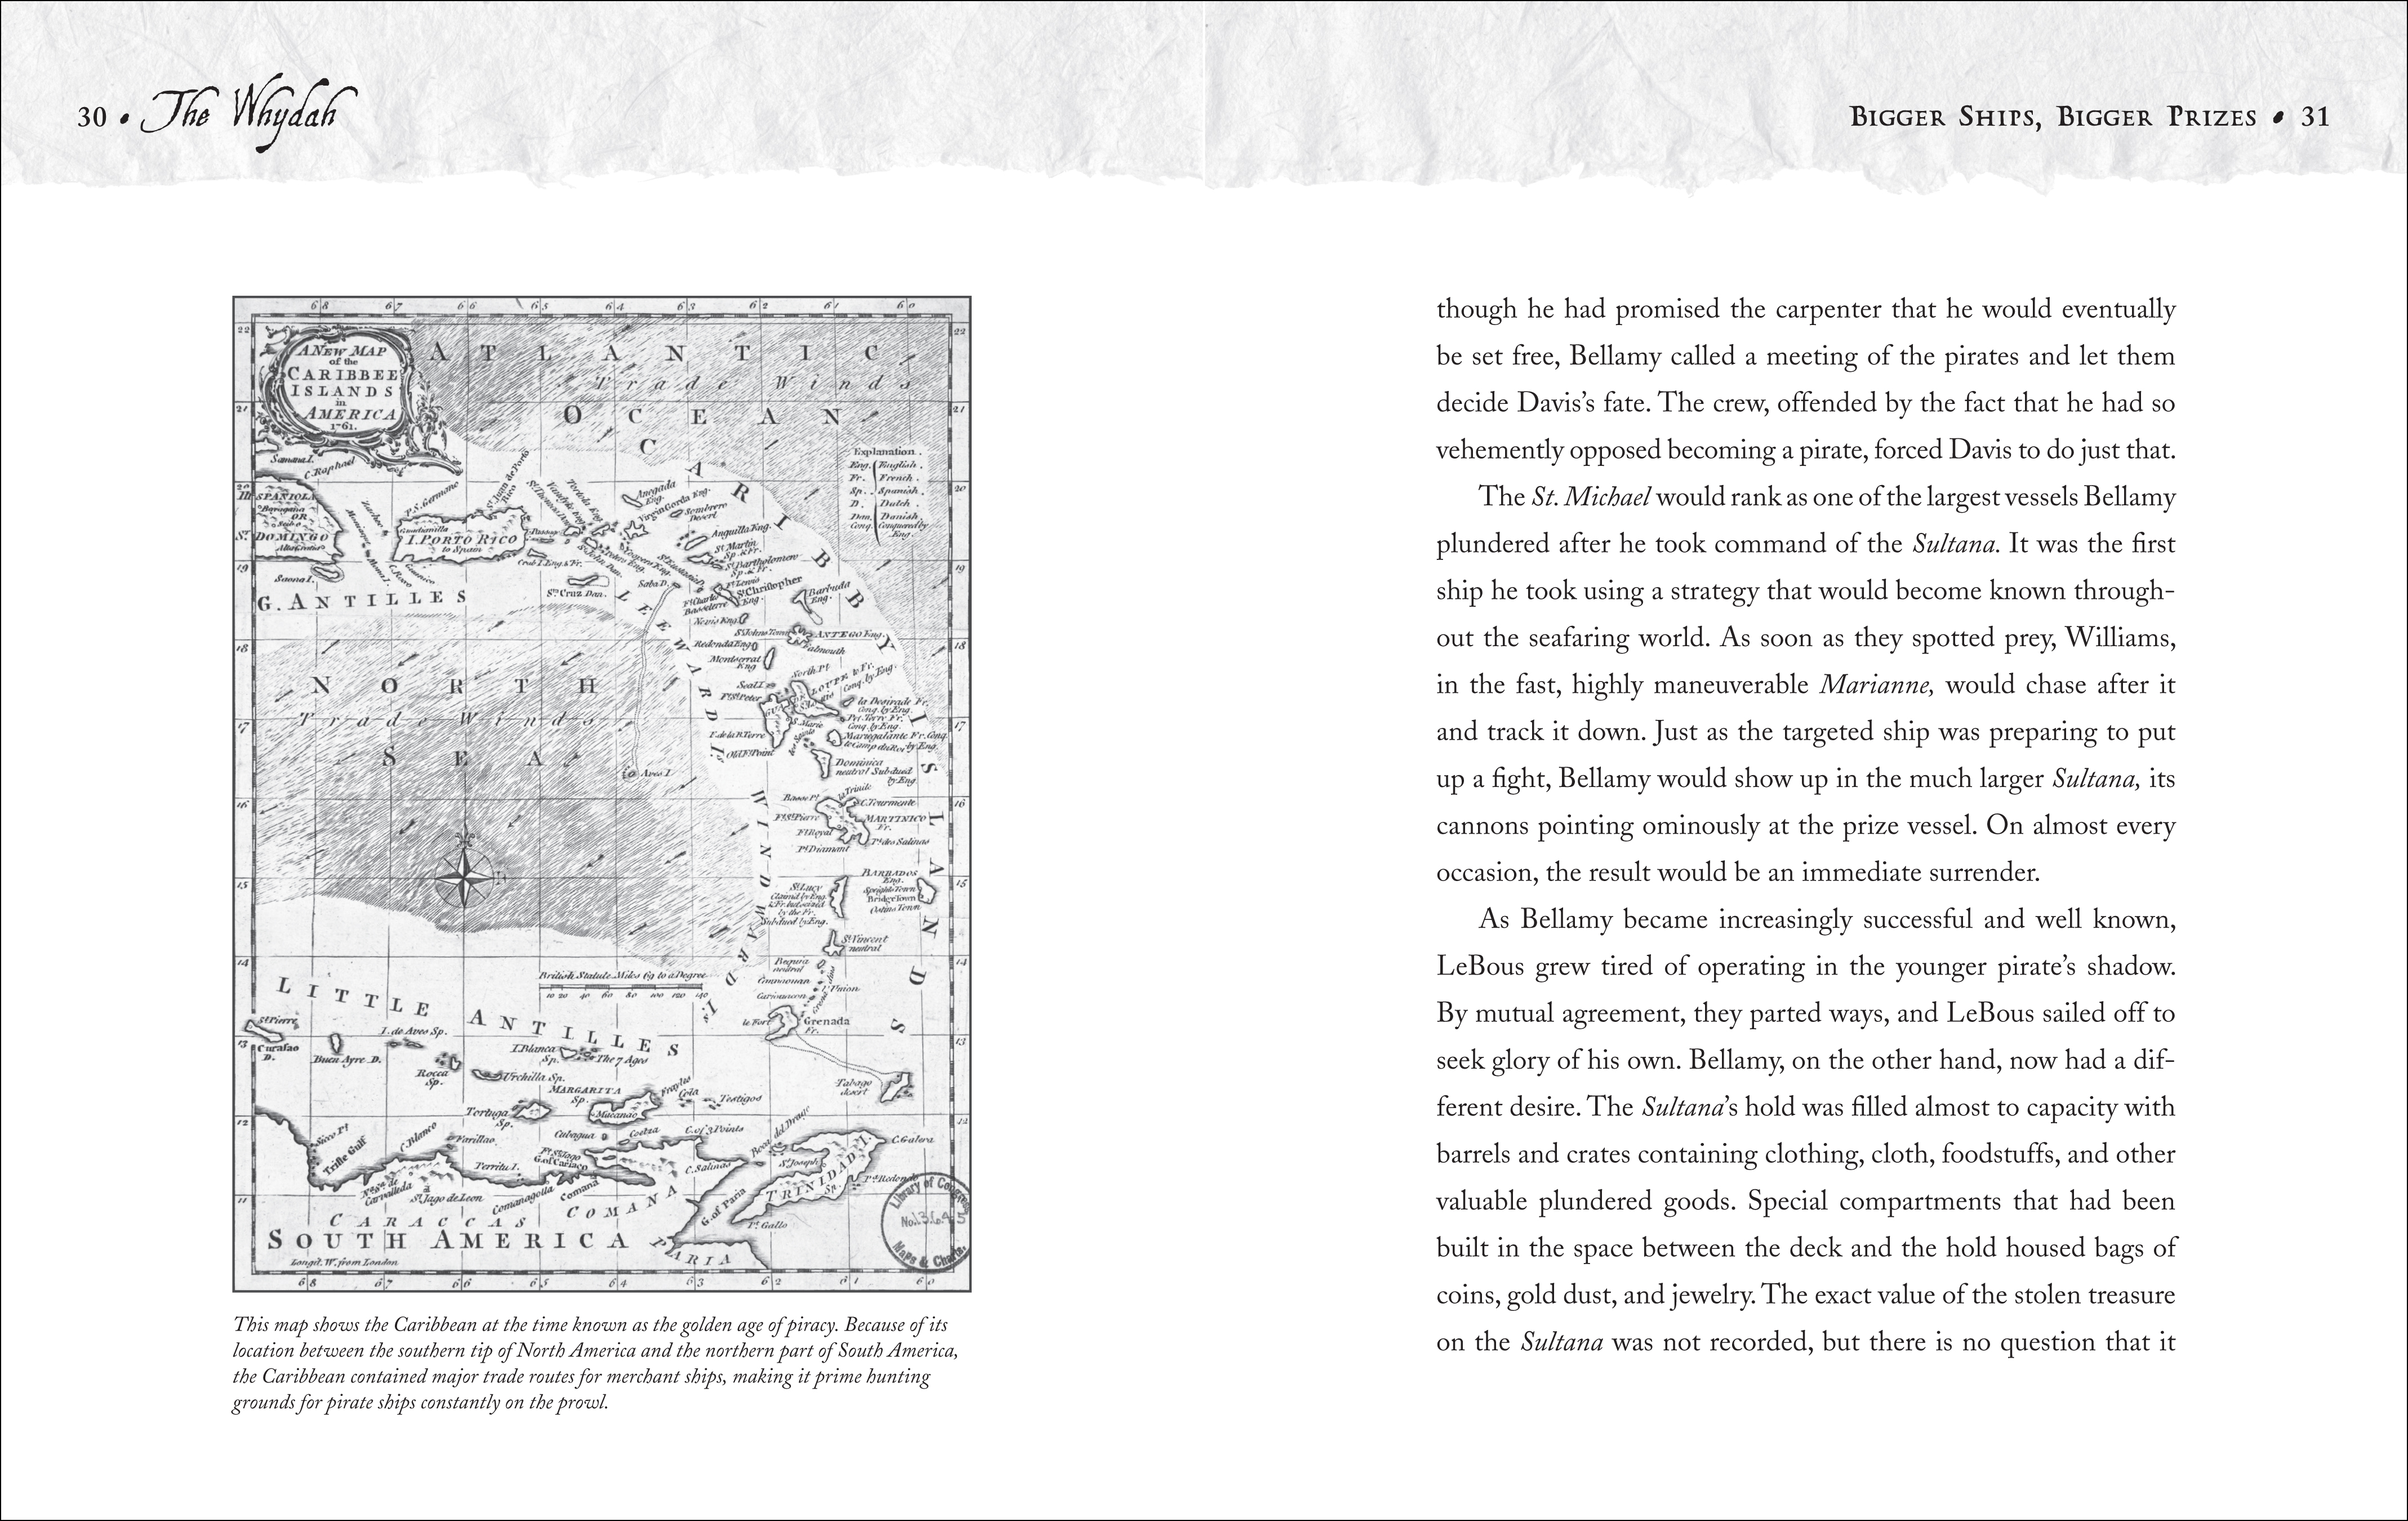 Text spread for THE WHYDAH